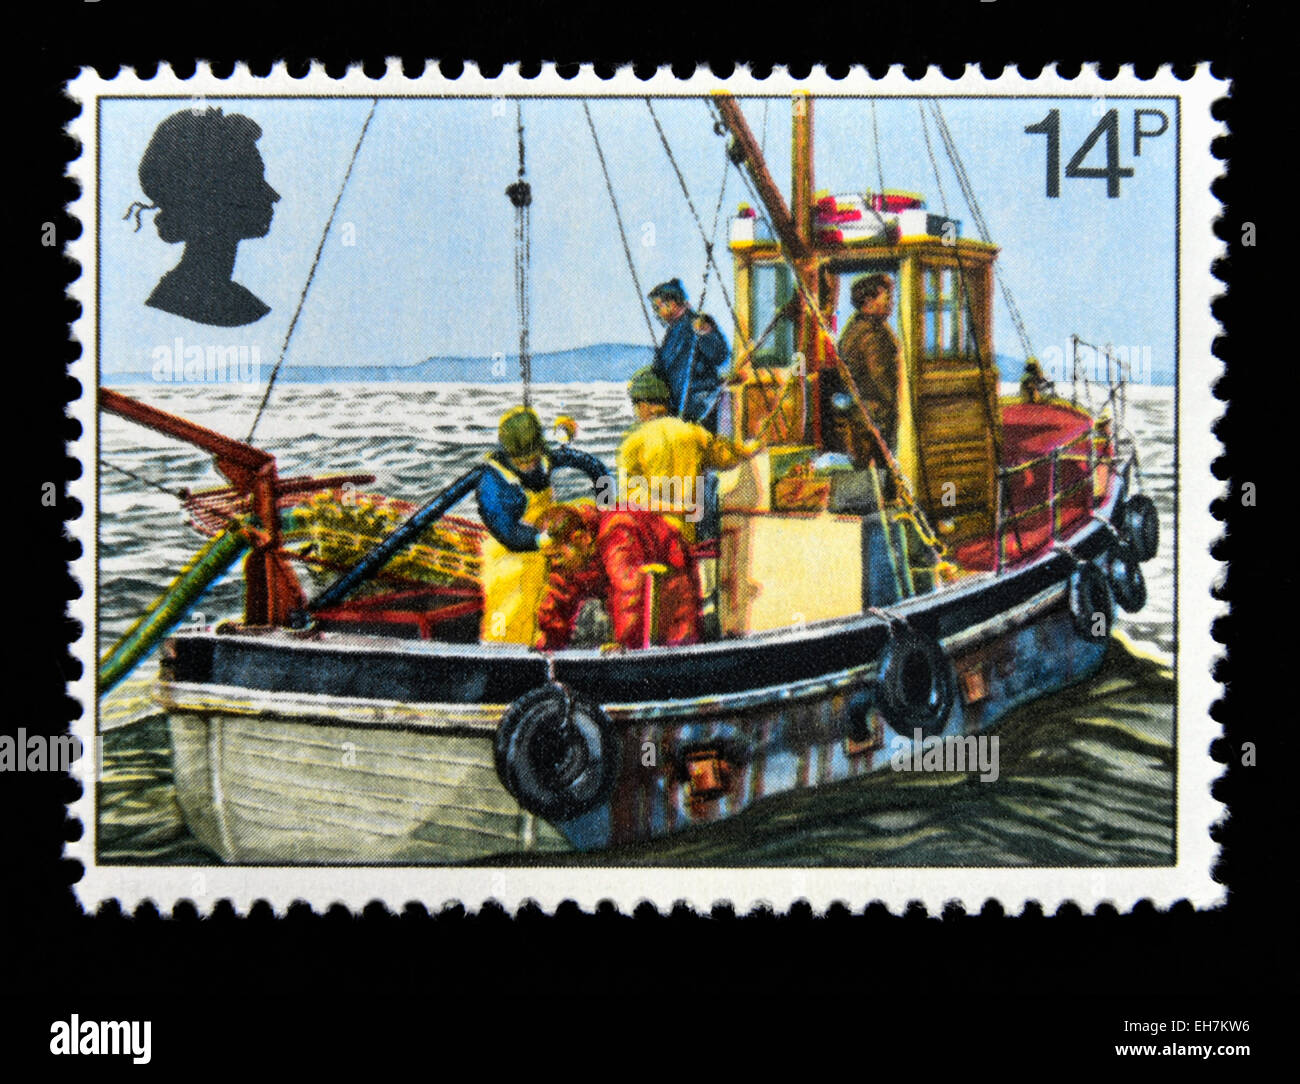 Postage stamp. Great Britain. Queen Elizabeth II. 1981. Fishing Industry. Cockle-dredging from Linsey II. 14p. - Stock Image